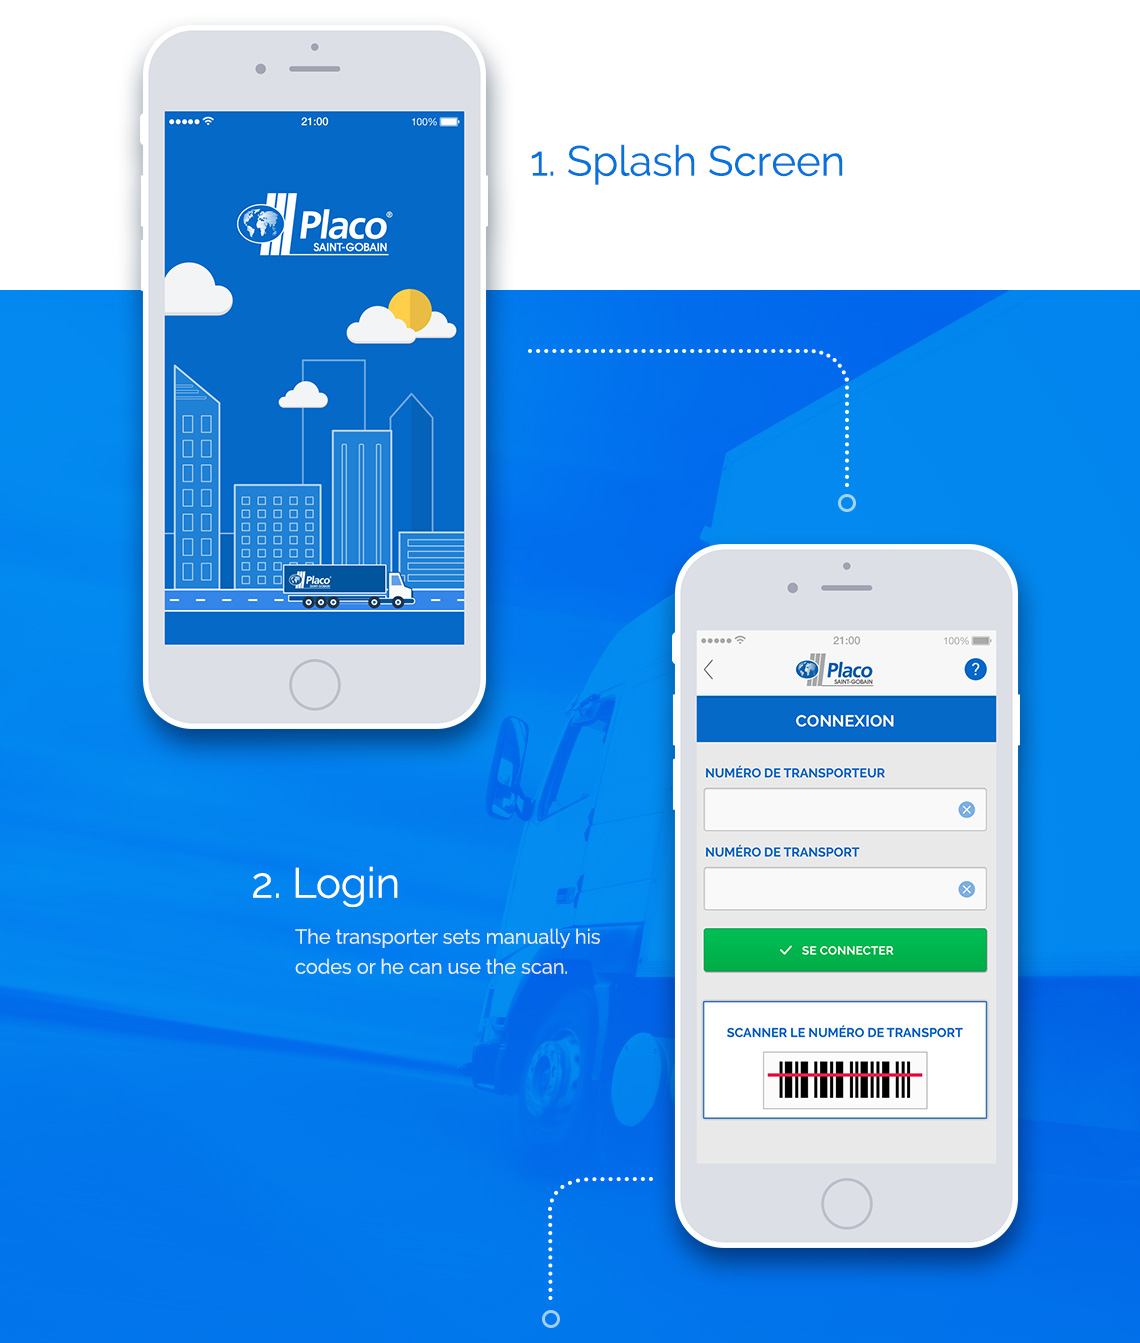 Splash screen and login page: Transporter sets manually his codes  or he can use the scan function.